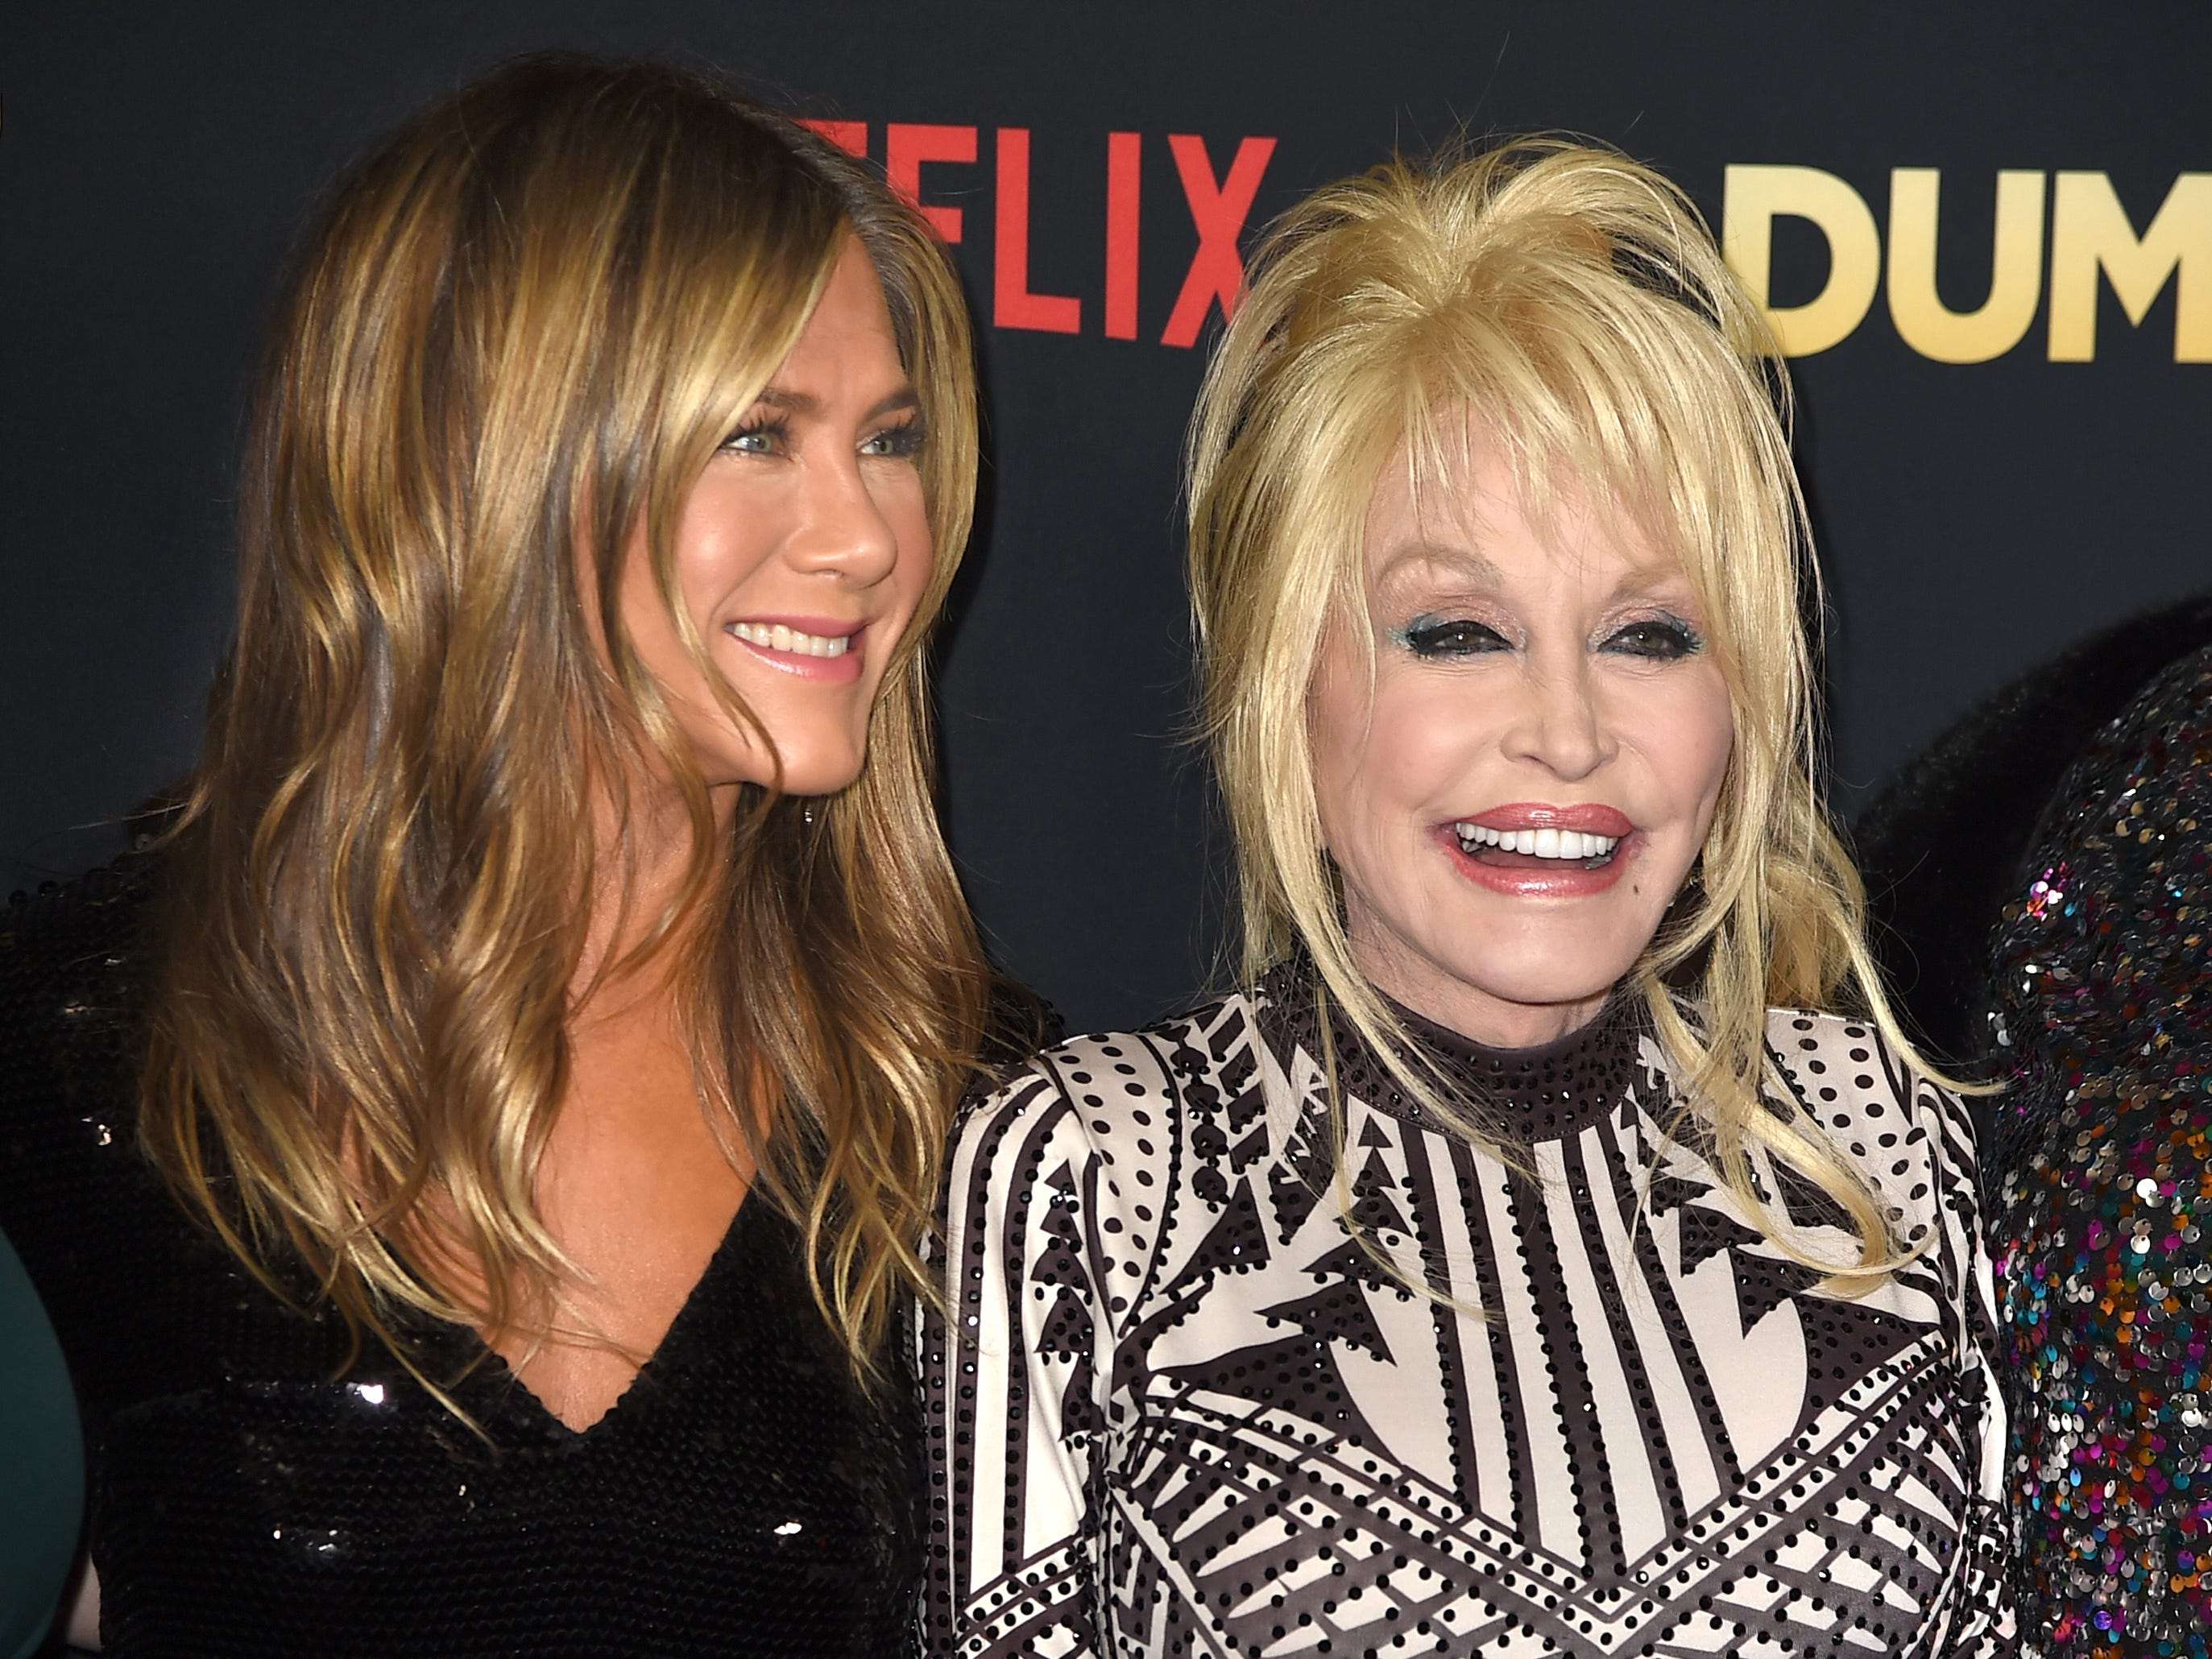 """LOS ANGELES, CA - DECEMBER 06:  Jennifer Aniston (L) and Dolly Parton arrive at the premiere of Netflix's """"Dumplin'"""" at the Chinese Theater on December 6, 2018 in Los Angeles, California.  (Photo by Kevin Winter/Getty Images) ORG XMIT: 775264138 ORIG FILE ID: 1069374270"""